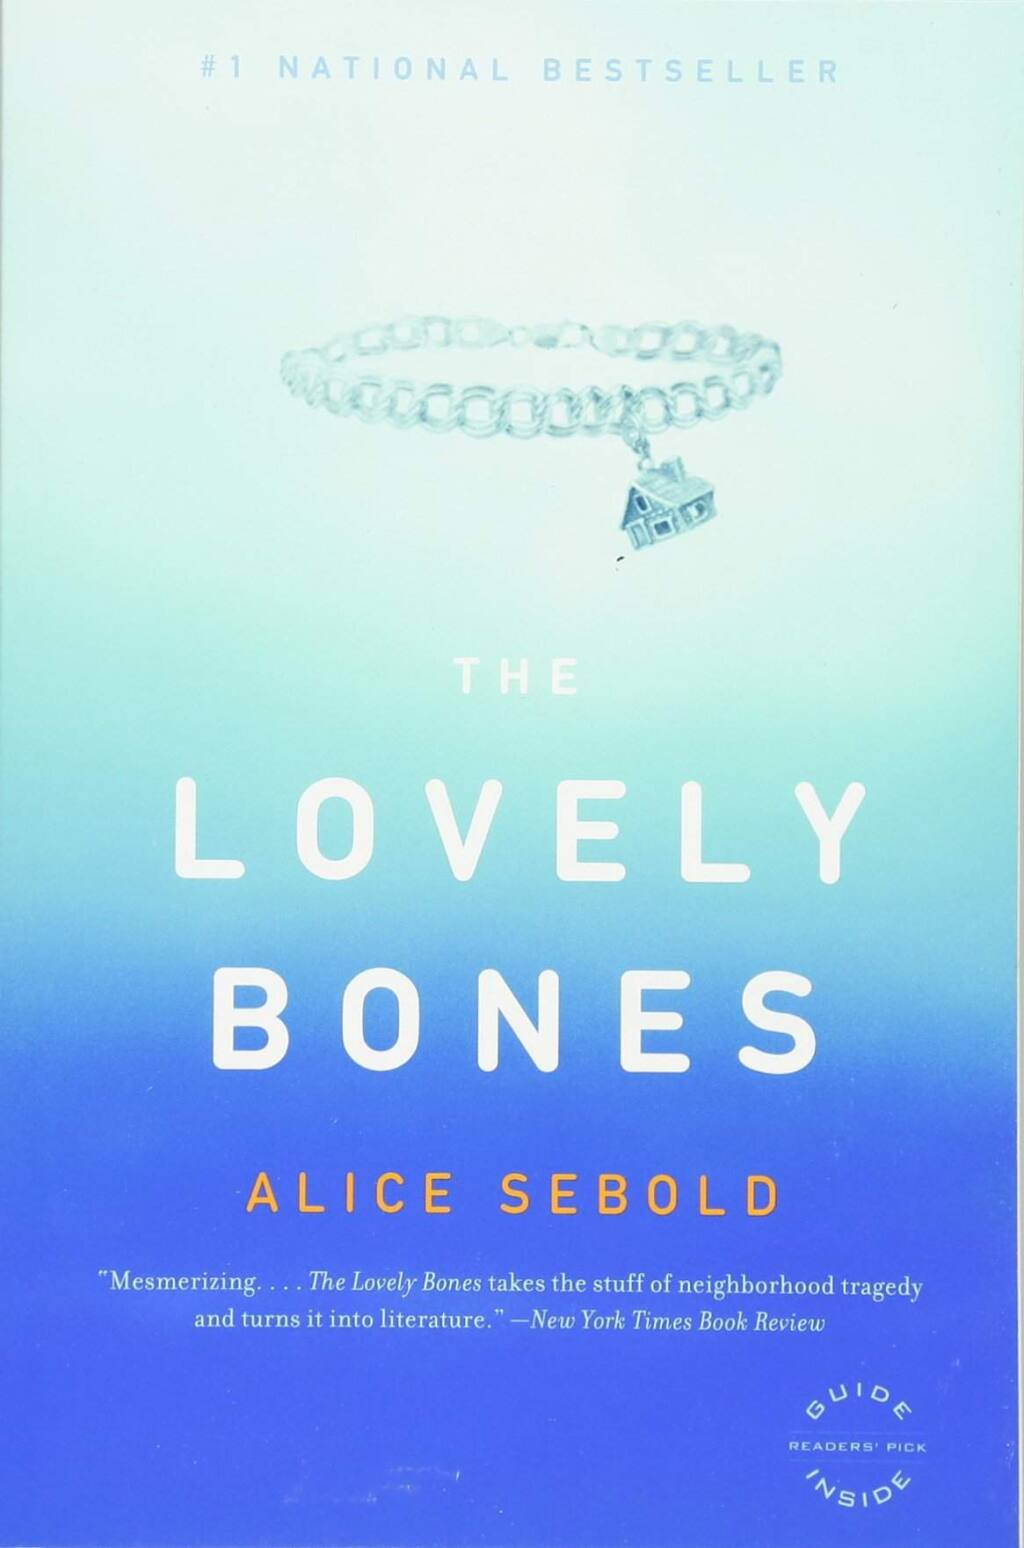 'The Lovely Bones' - Alice Sebold: 14-year-old Susie Salmon sees life unfold from heaven after her death, watching her family grieve and her killer try to cover up the evidence. At one point, her mother flees to Sonoma County and starts working at a winery in Santa Rosa. This story takes place in the mid-'70s. GoodReads reviewers gave this book a 3.79 out of 5 stars. (Amazon)